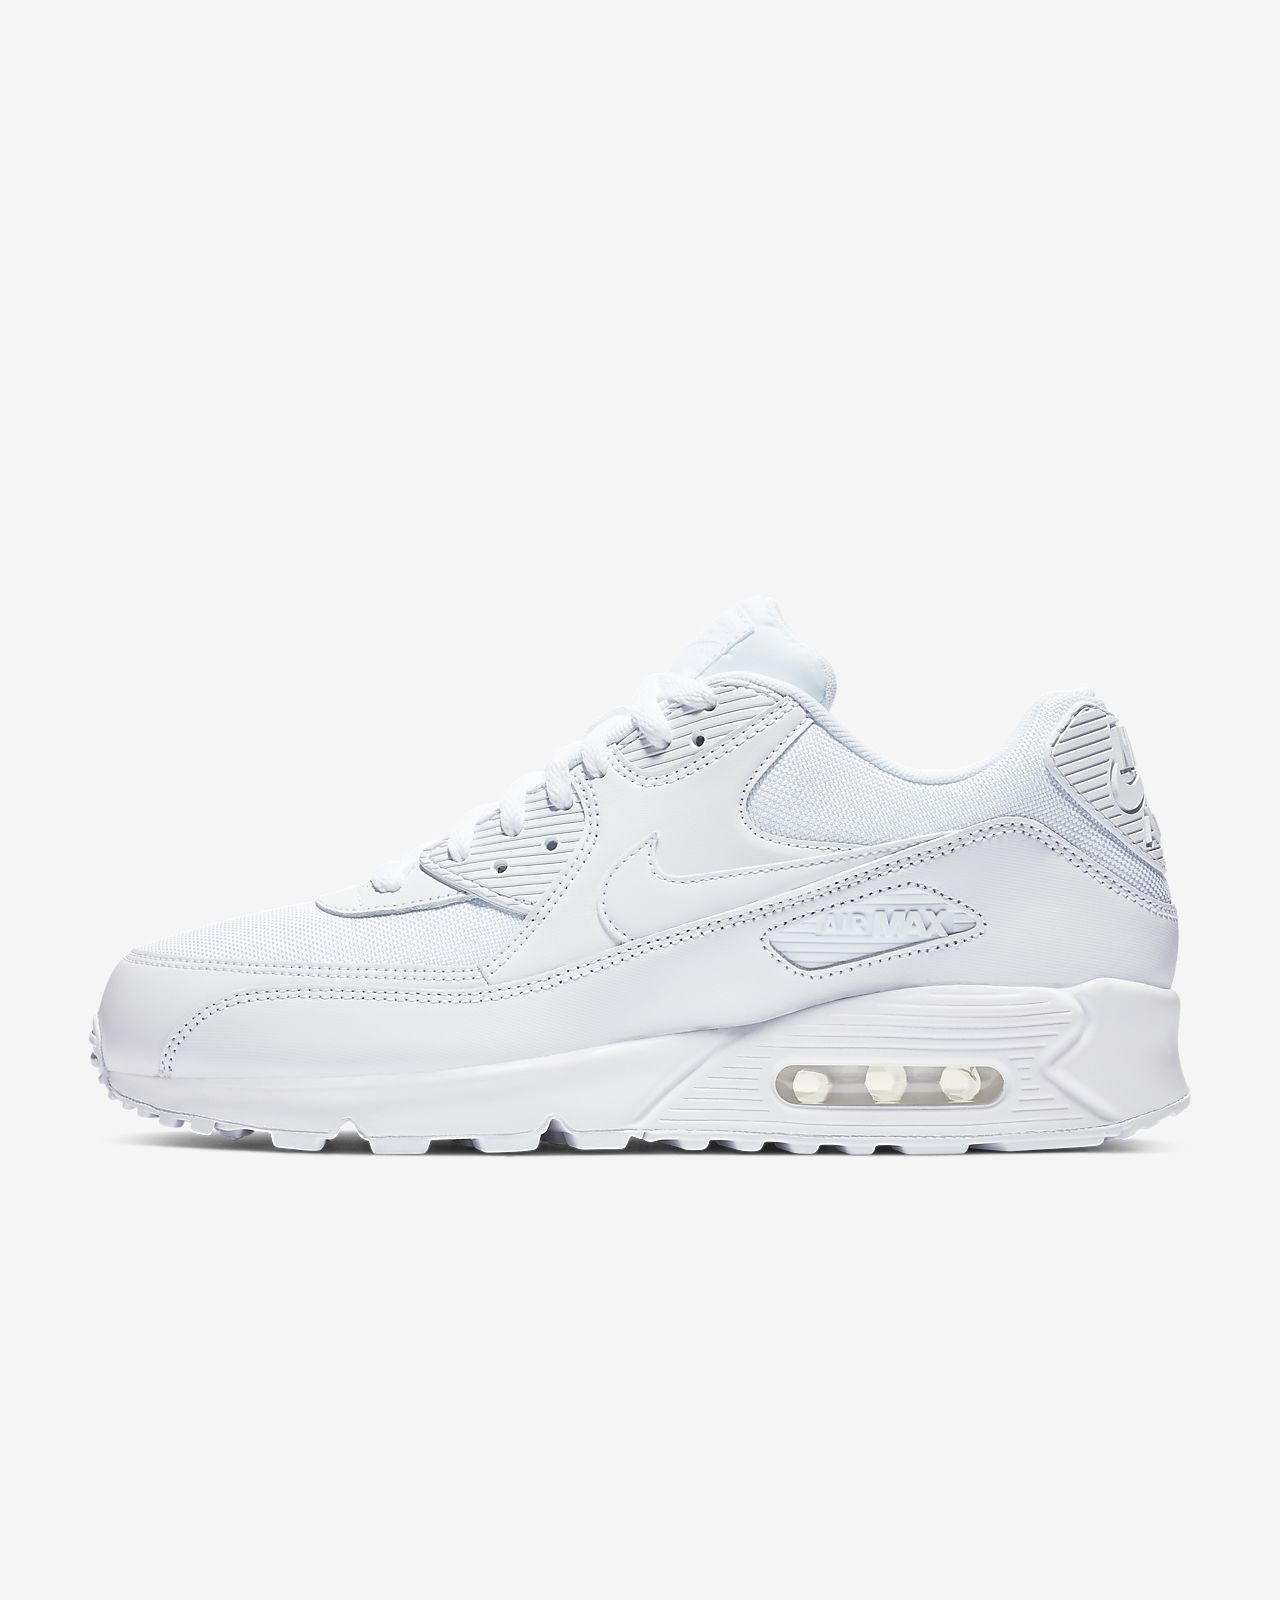 reputable site 807e9 4361d Nike Air Max 90 Essential